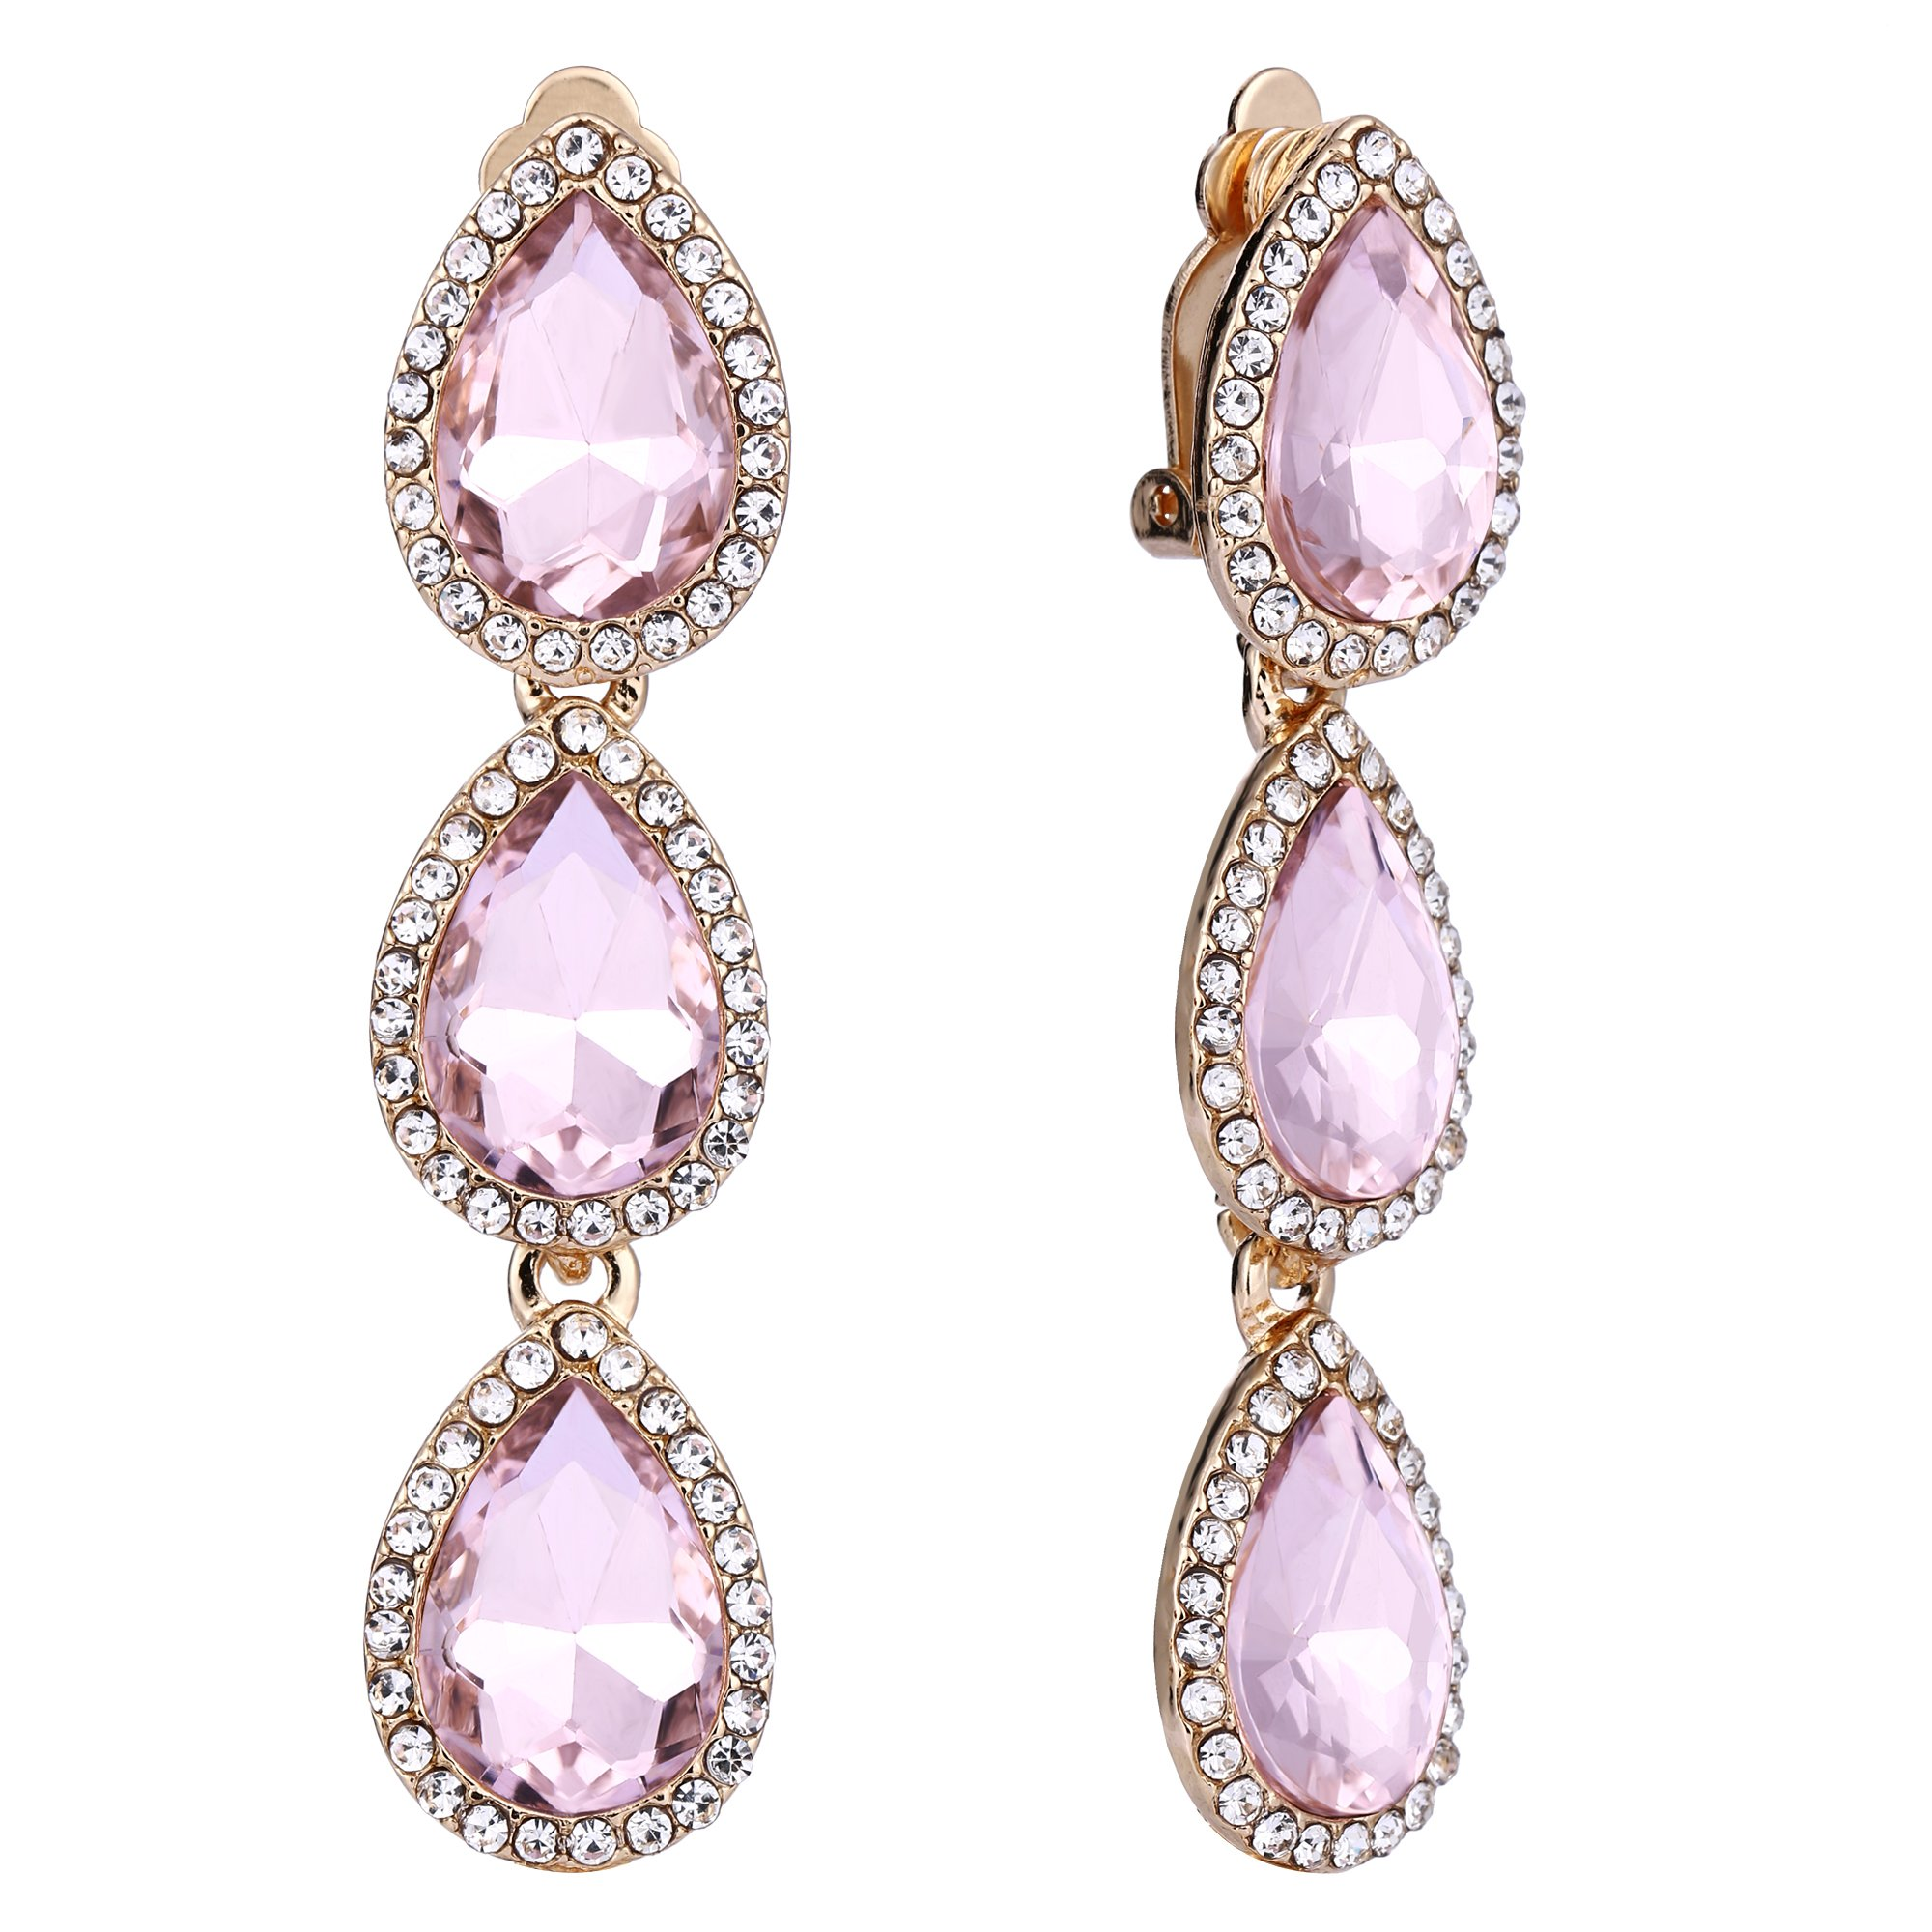 EleQueen Women's Gold-tone Austrian Crystal Teardrop Pear Shape 2.4 Inch Long Clip-on Dangle Earrings Pink